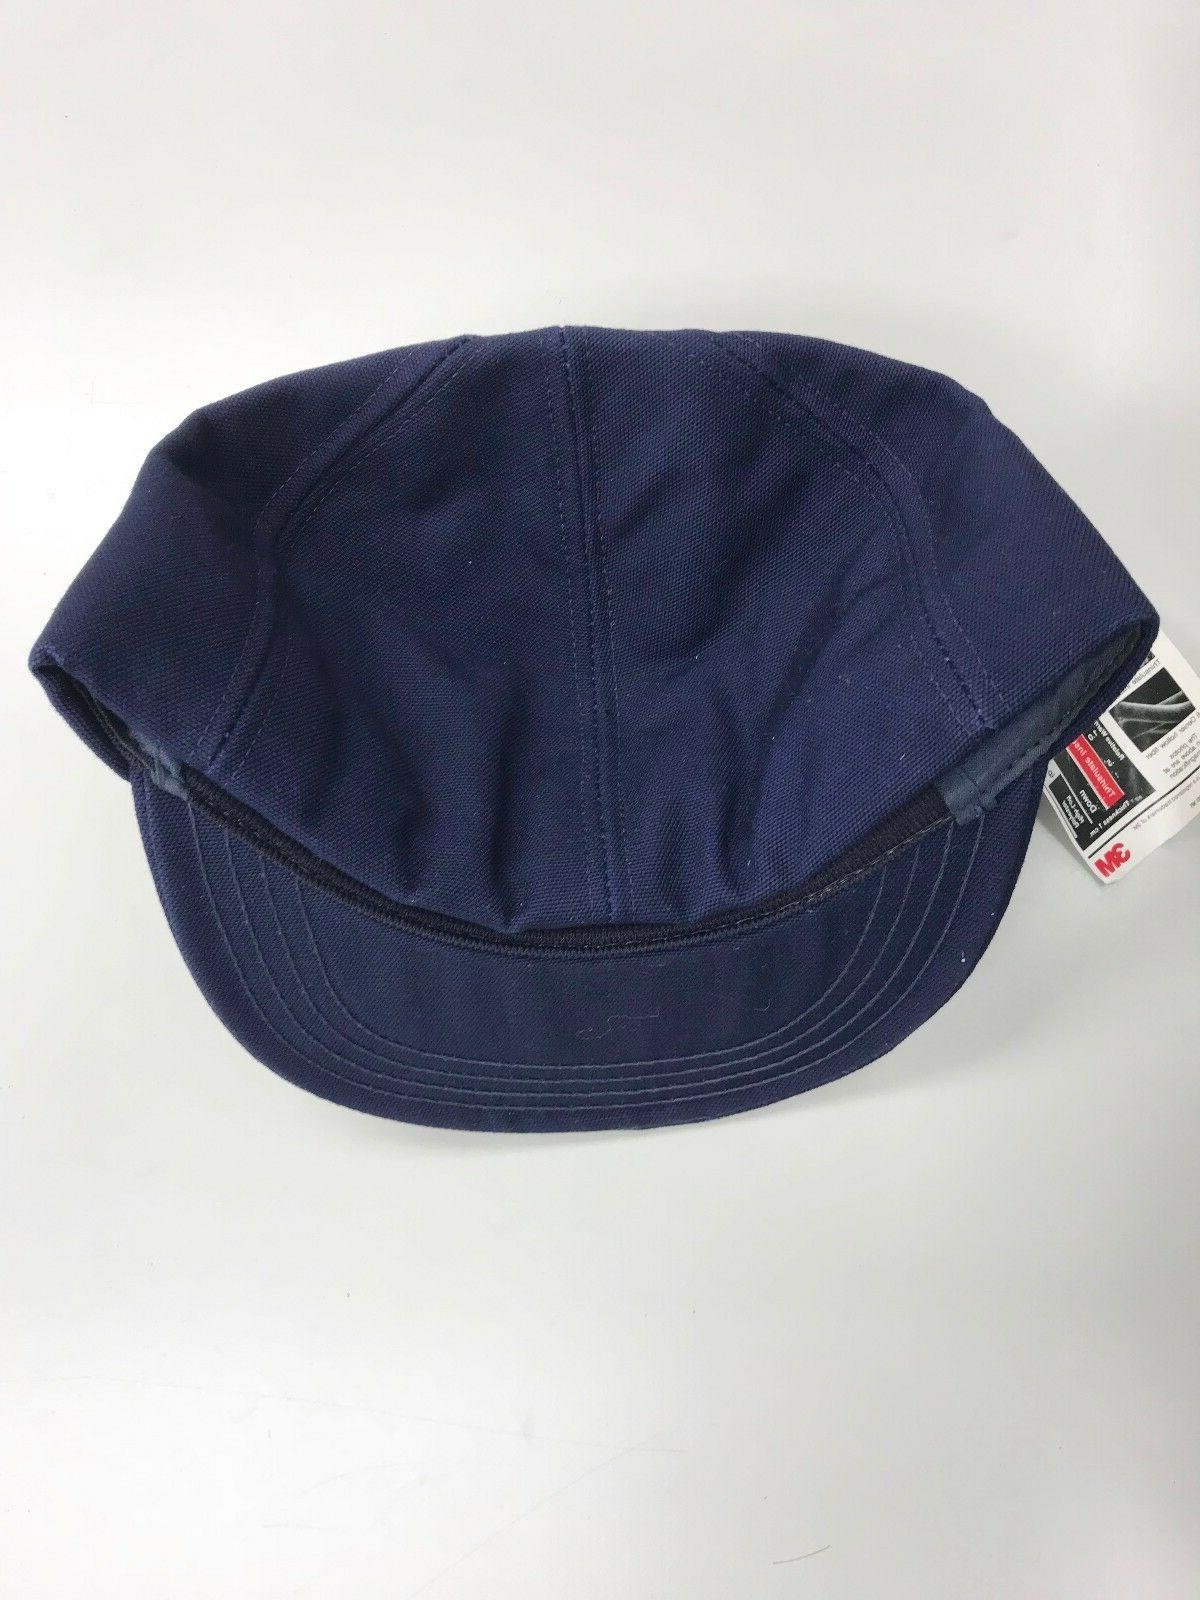 Brand tag Vintage Carhartt 3M Fitted men hat in USA